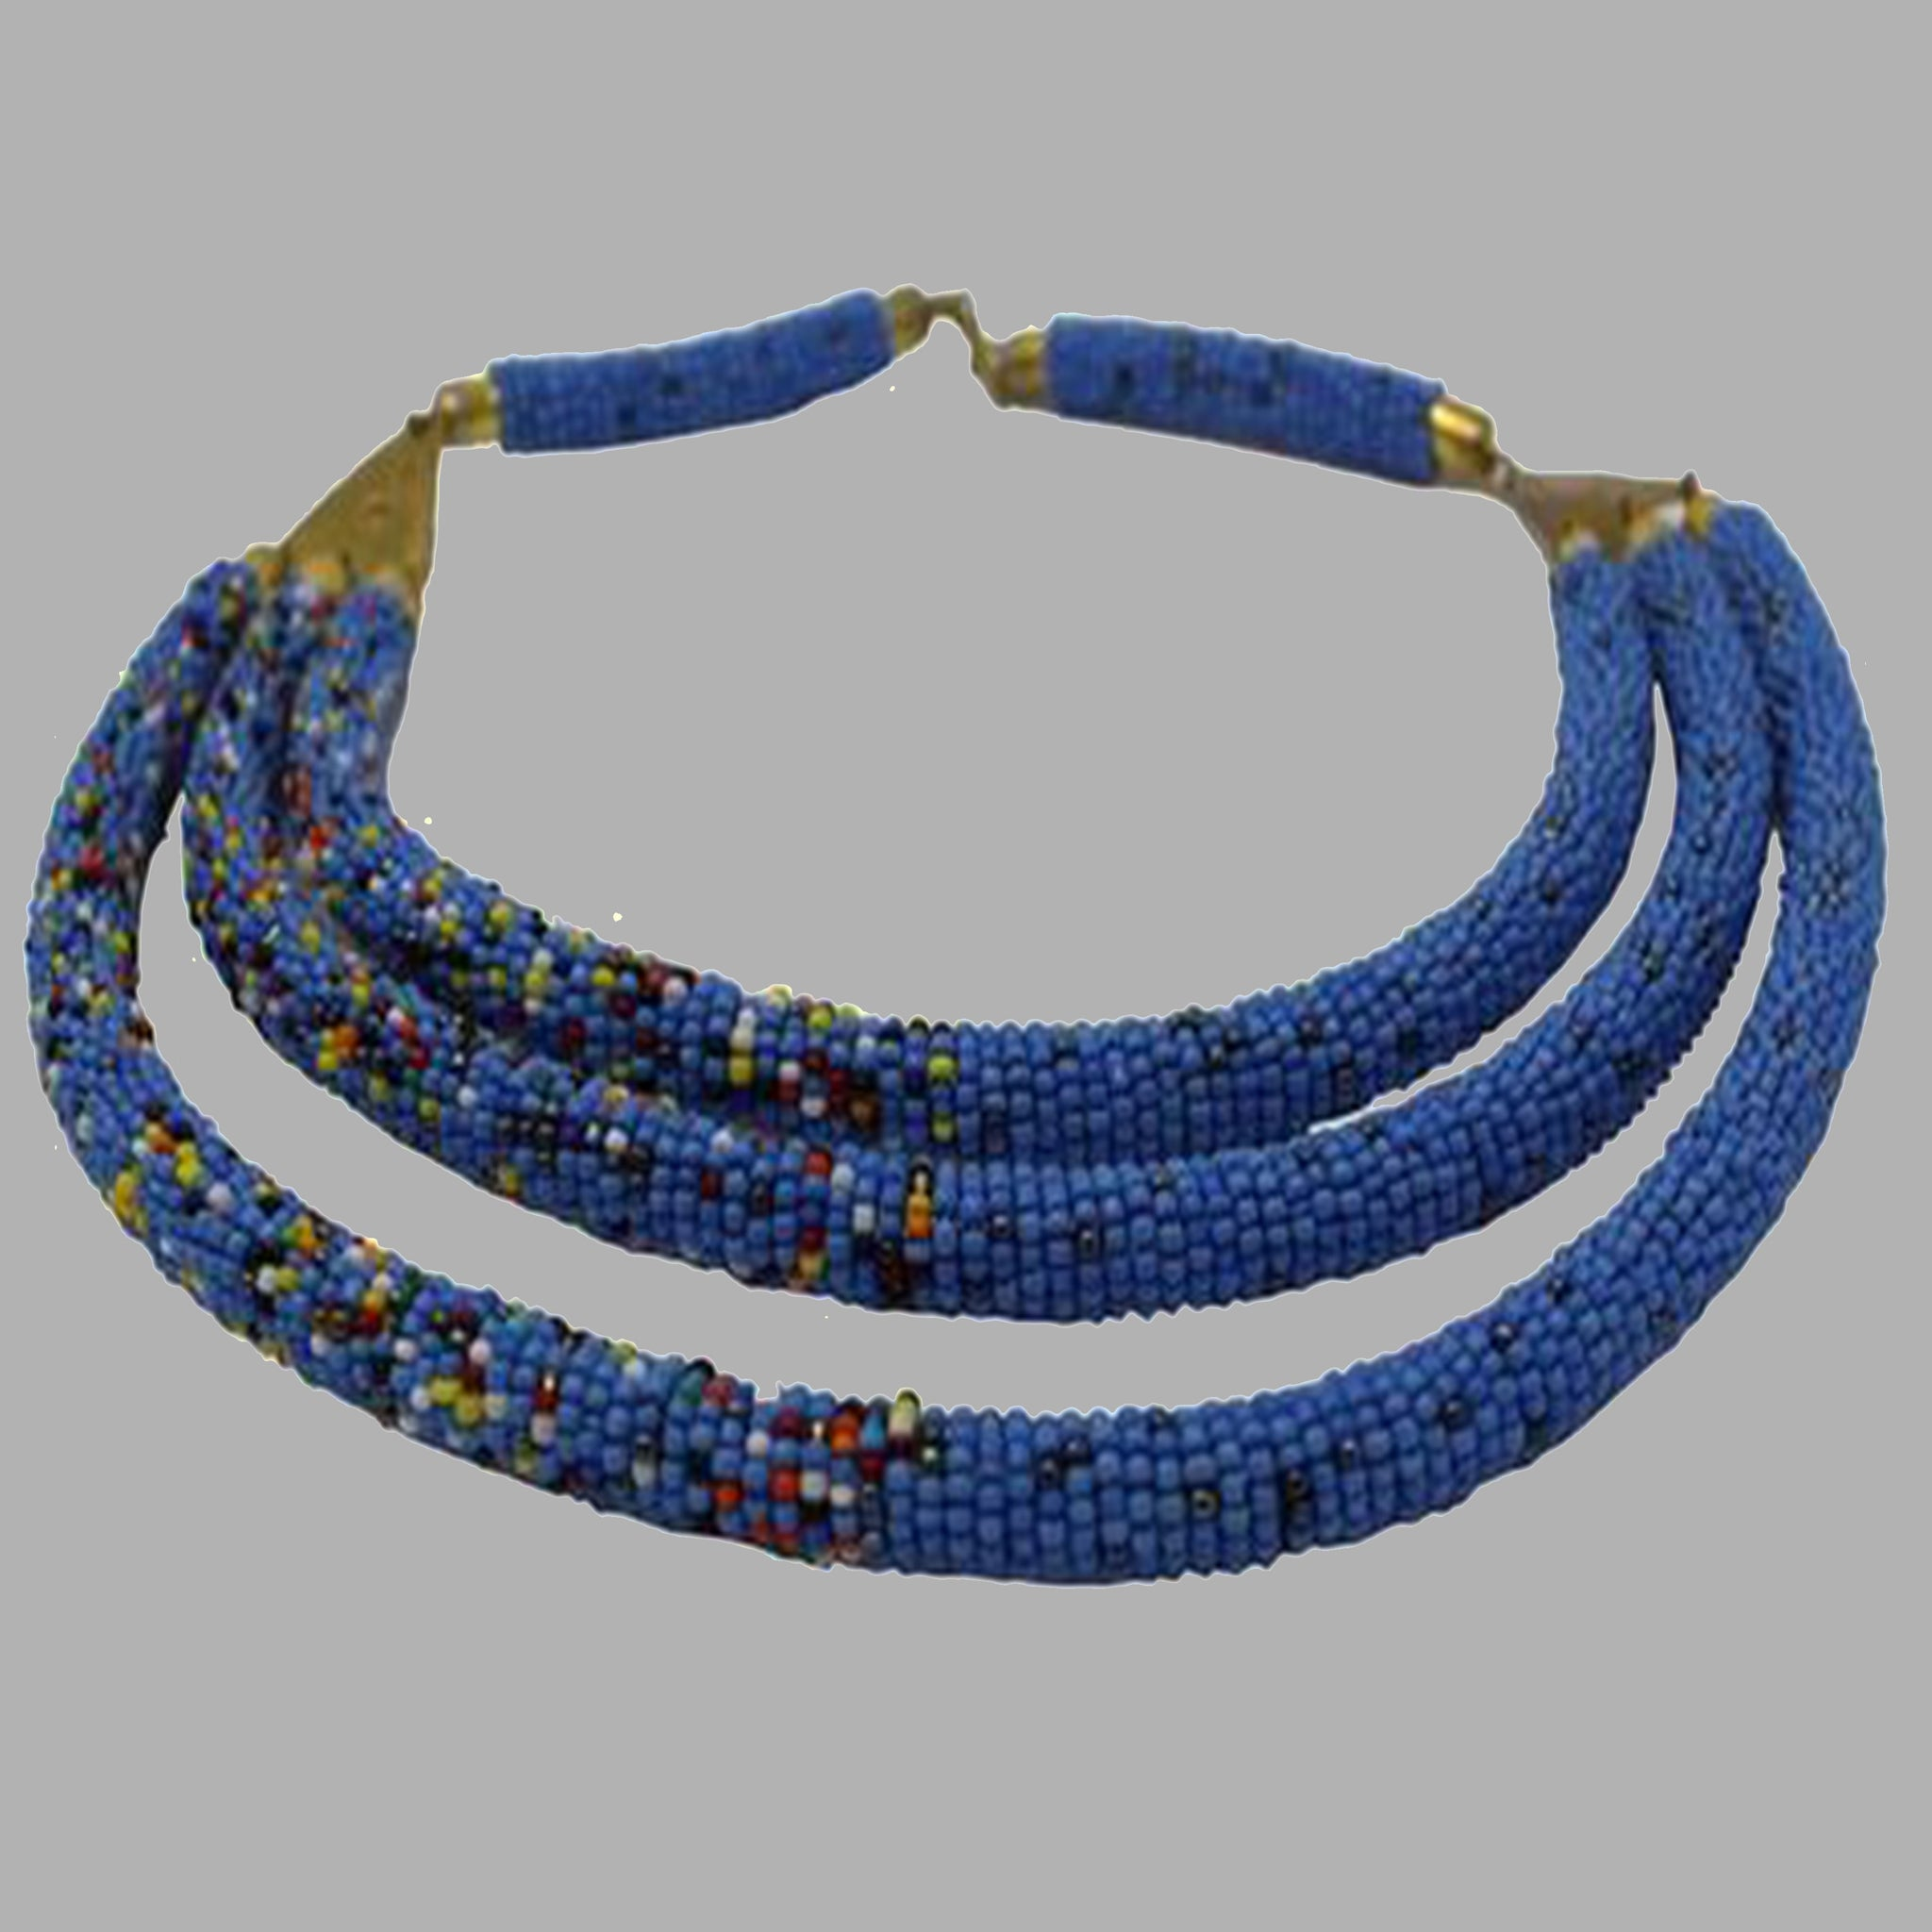 Contemporary Beaded Necklace  design beading patterns for women and girls Blue and multicolor south african tradition jewelry